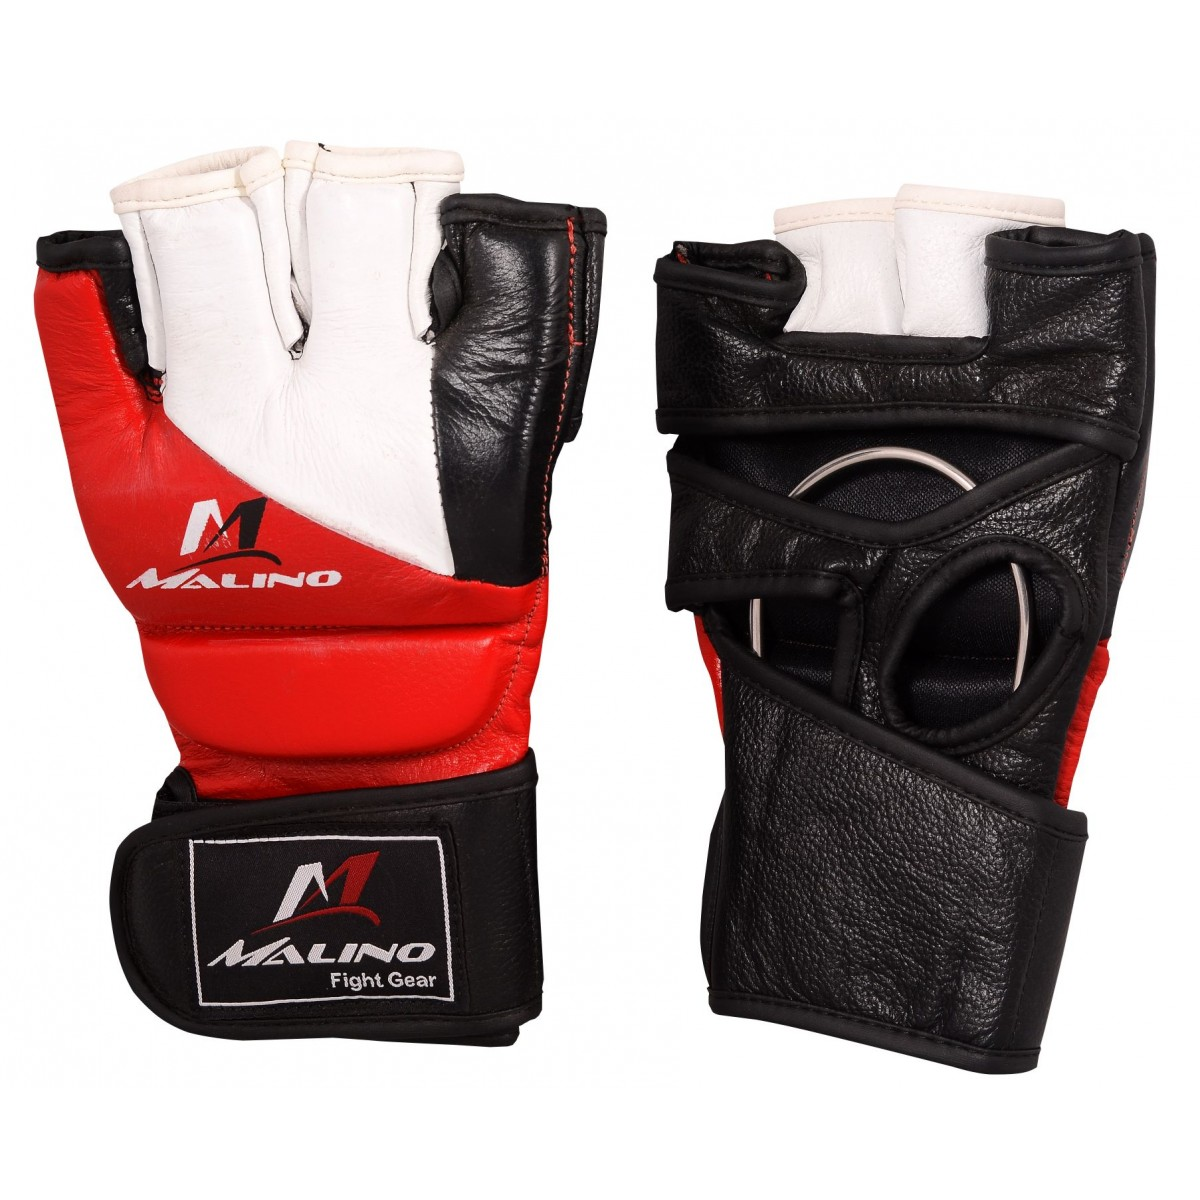 Malino MMA Mild Leather Gloves